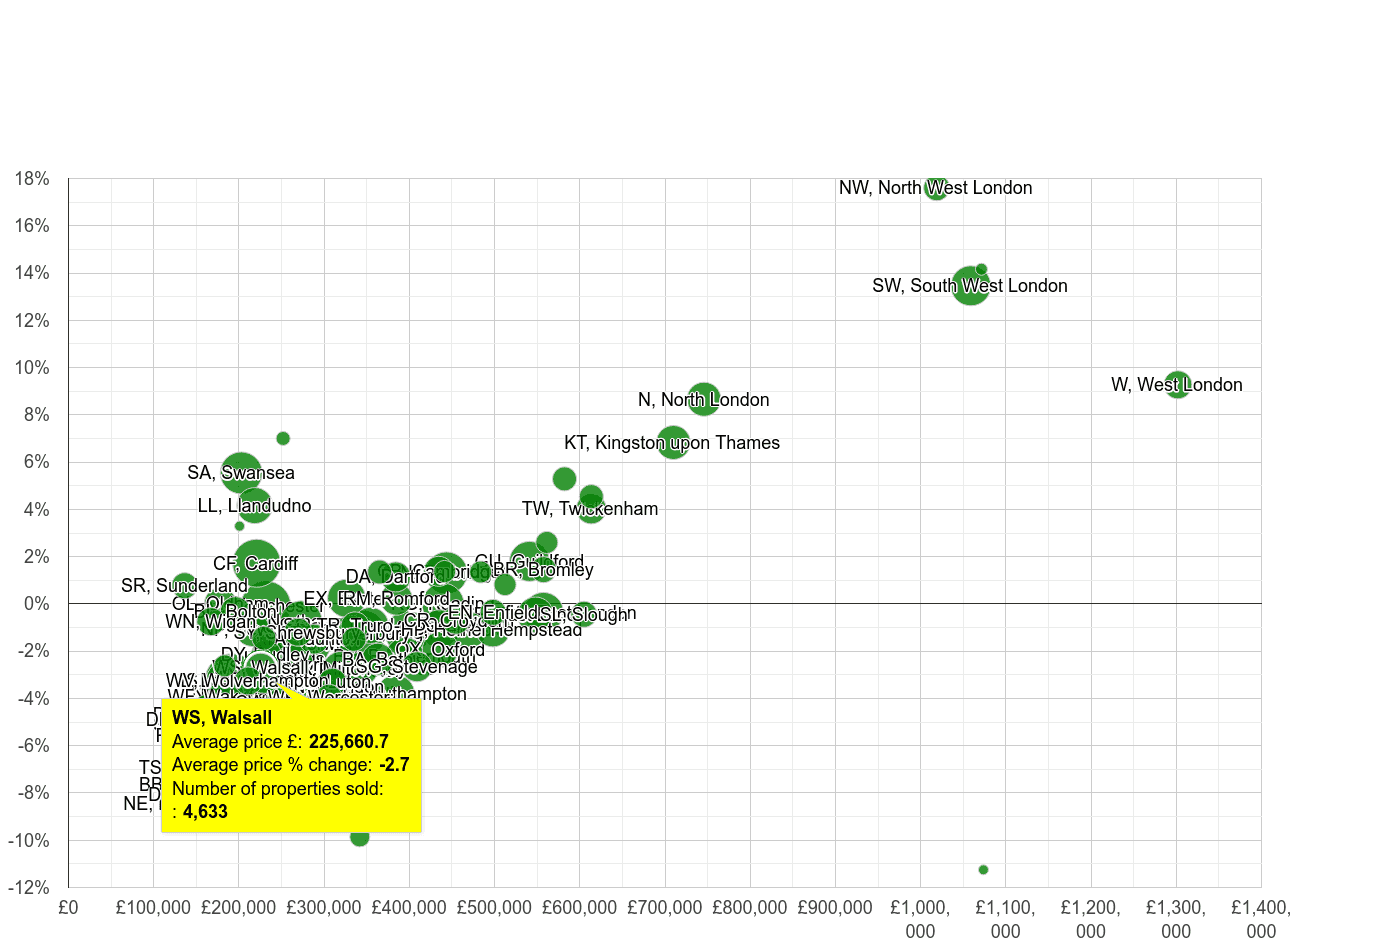 Walsall house prices compared to other areas